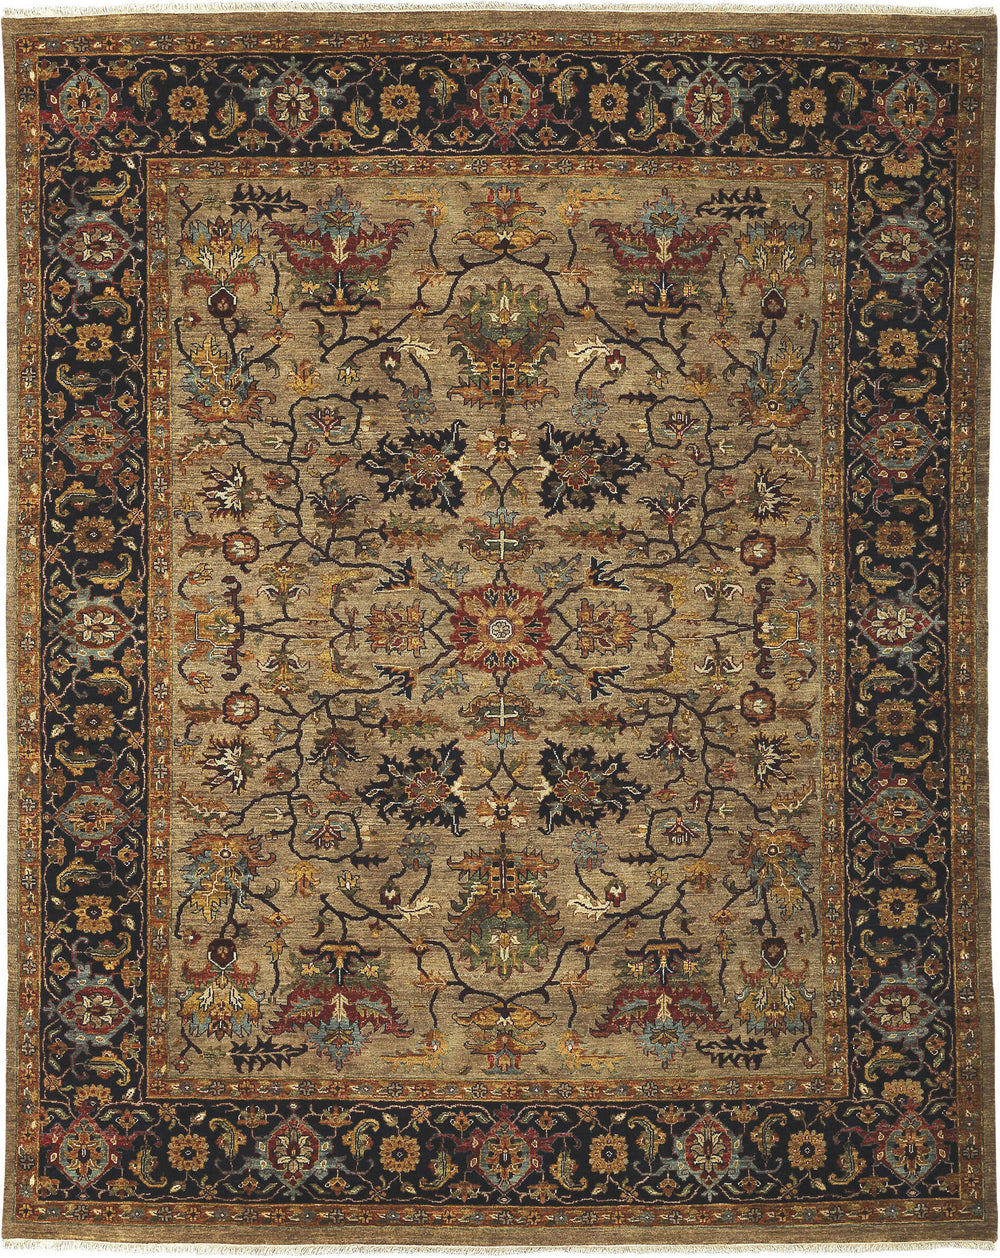 Amer Rugs Antiquity ANQ-8 Area Rug